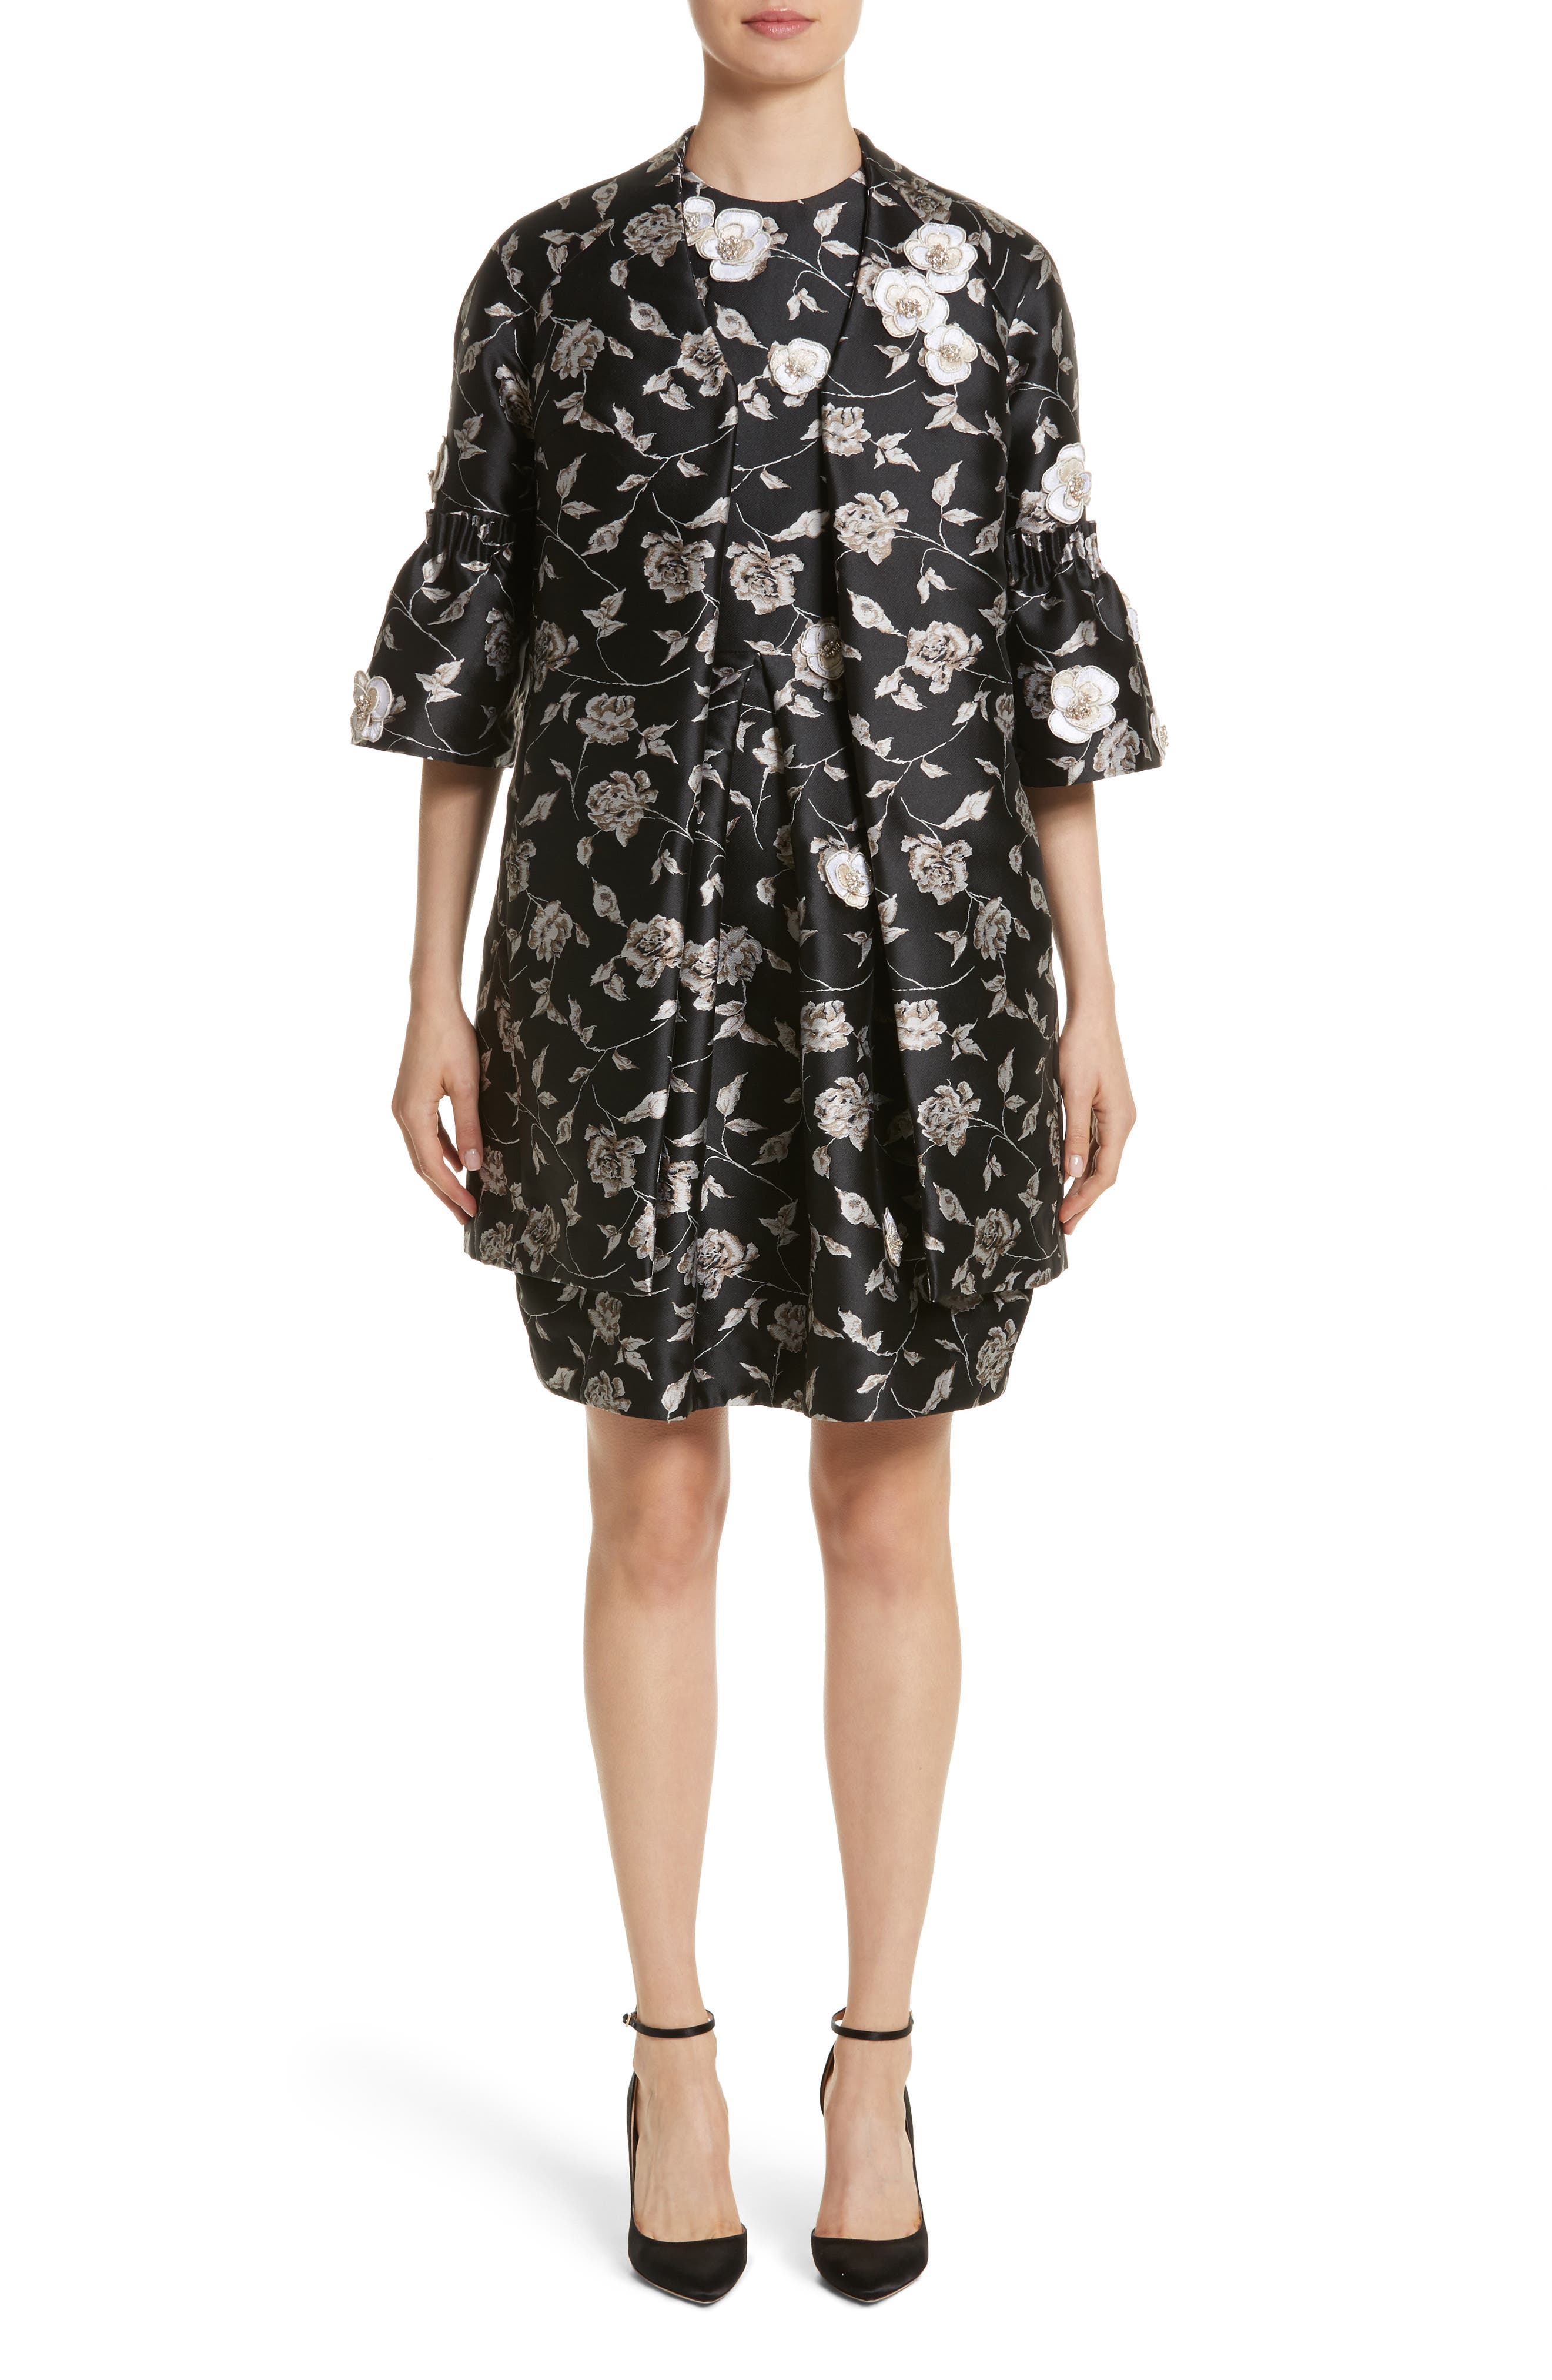 Carmen Marc Valvo Embellished Appliqué Floral Jacquard Cocktail Dress,                             Alternate thumbnail 7, color,                             Black